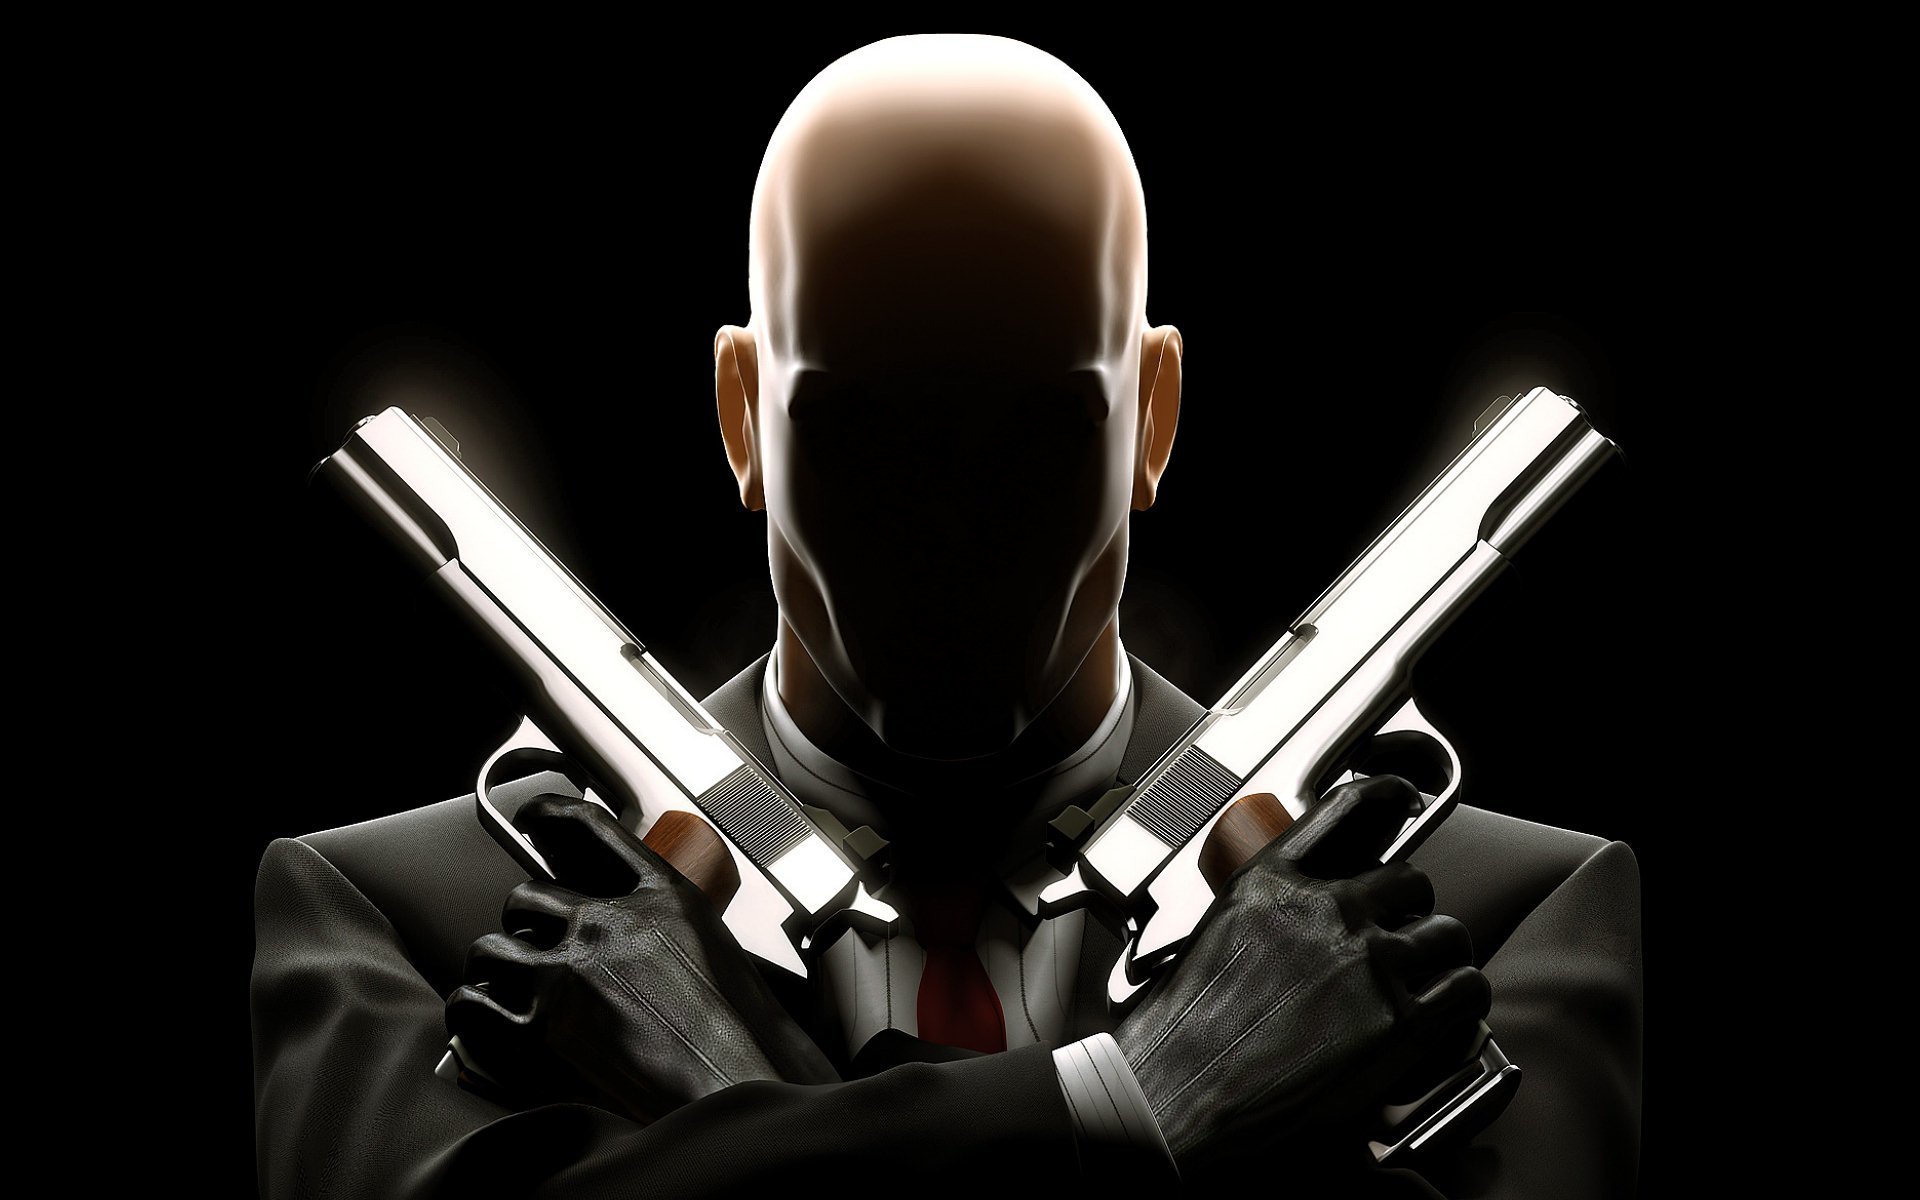 hitman wallpaper